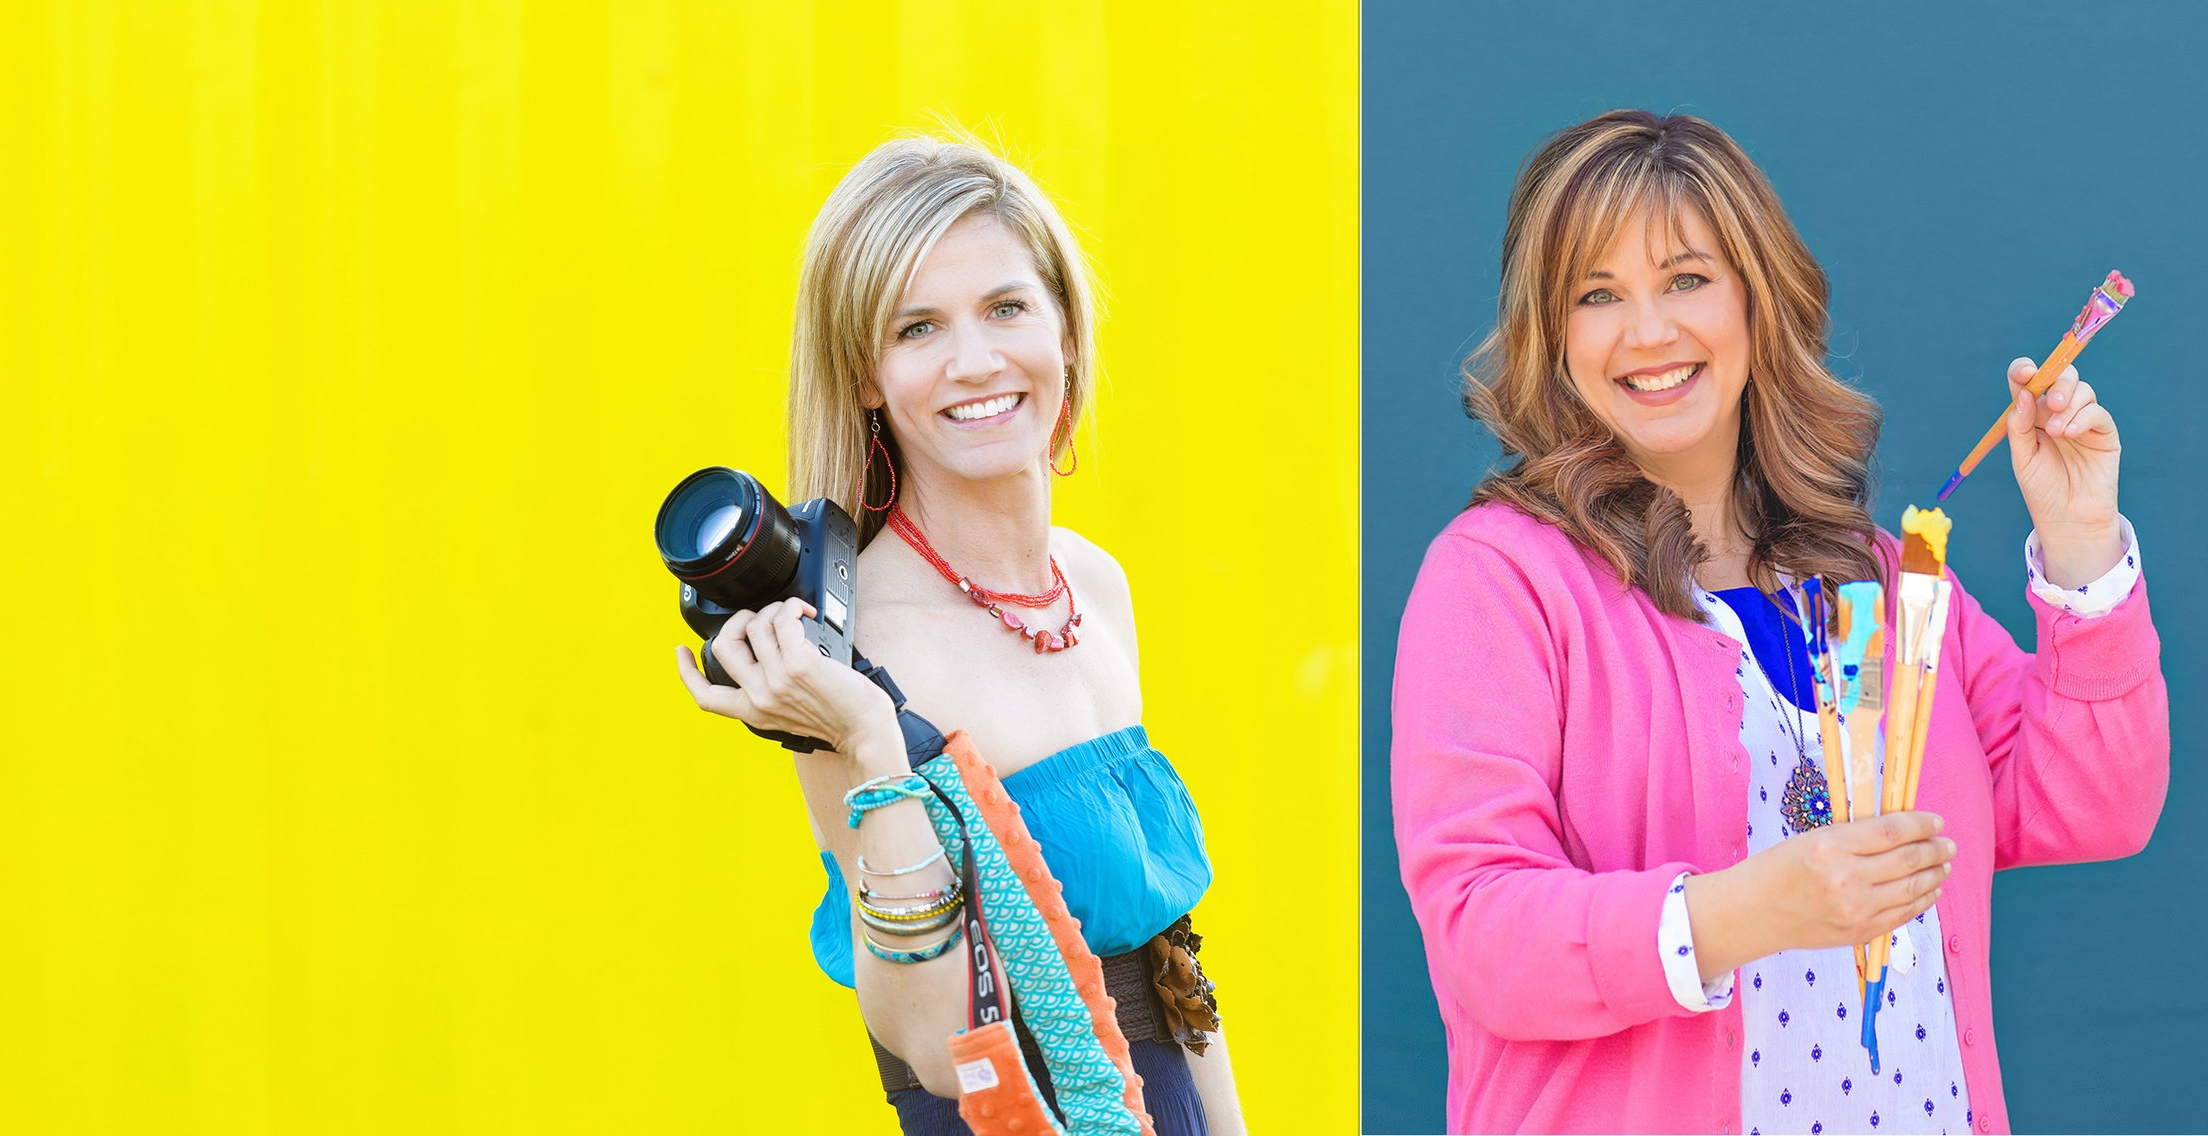 How the stars aligned. - Tracy and Jennifer are excited to teach future photographers and designers a skill they will enjoy and possibly learn to love as a profession. Read more about how this journey started.